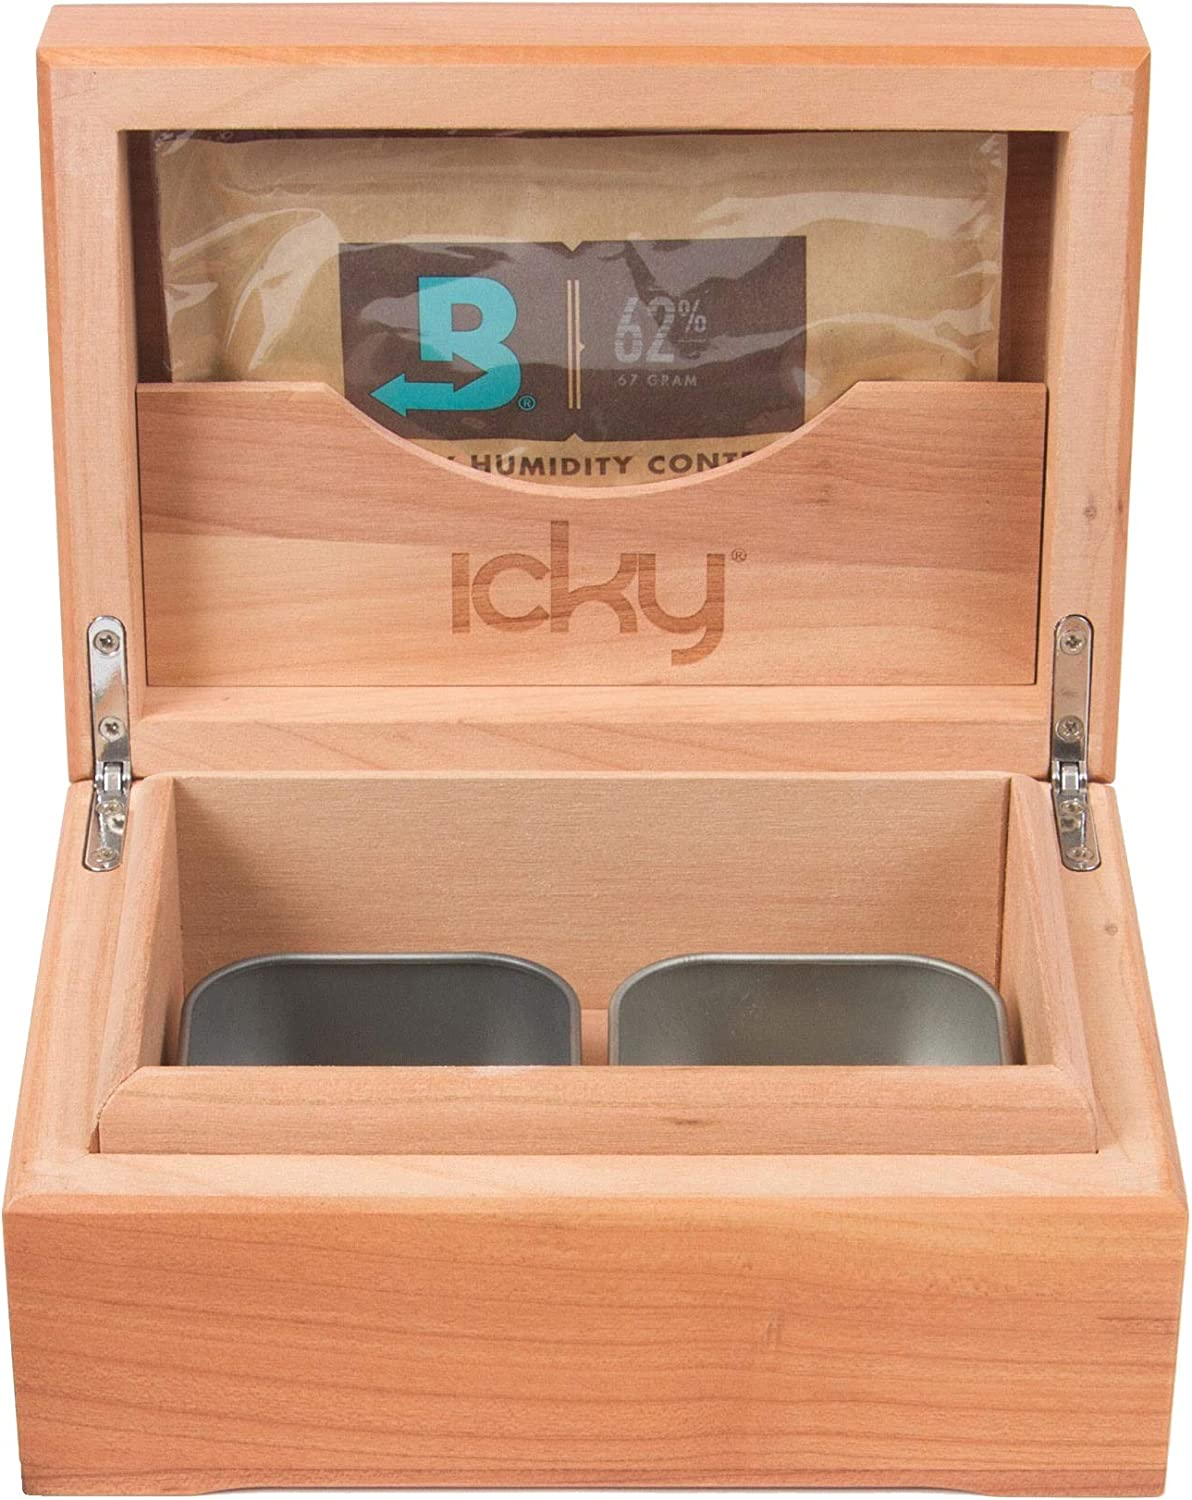 Icky Box 2 Tin- Keeps Herb at Wood. Cherry Ideal Latest item Outlet SALE 100% Humidity